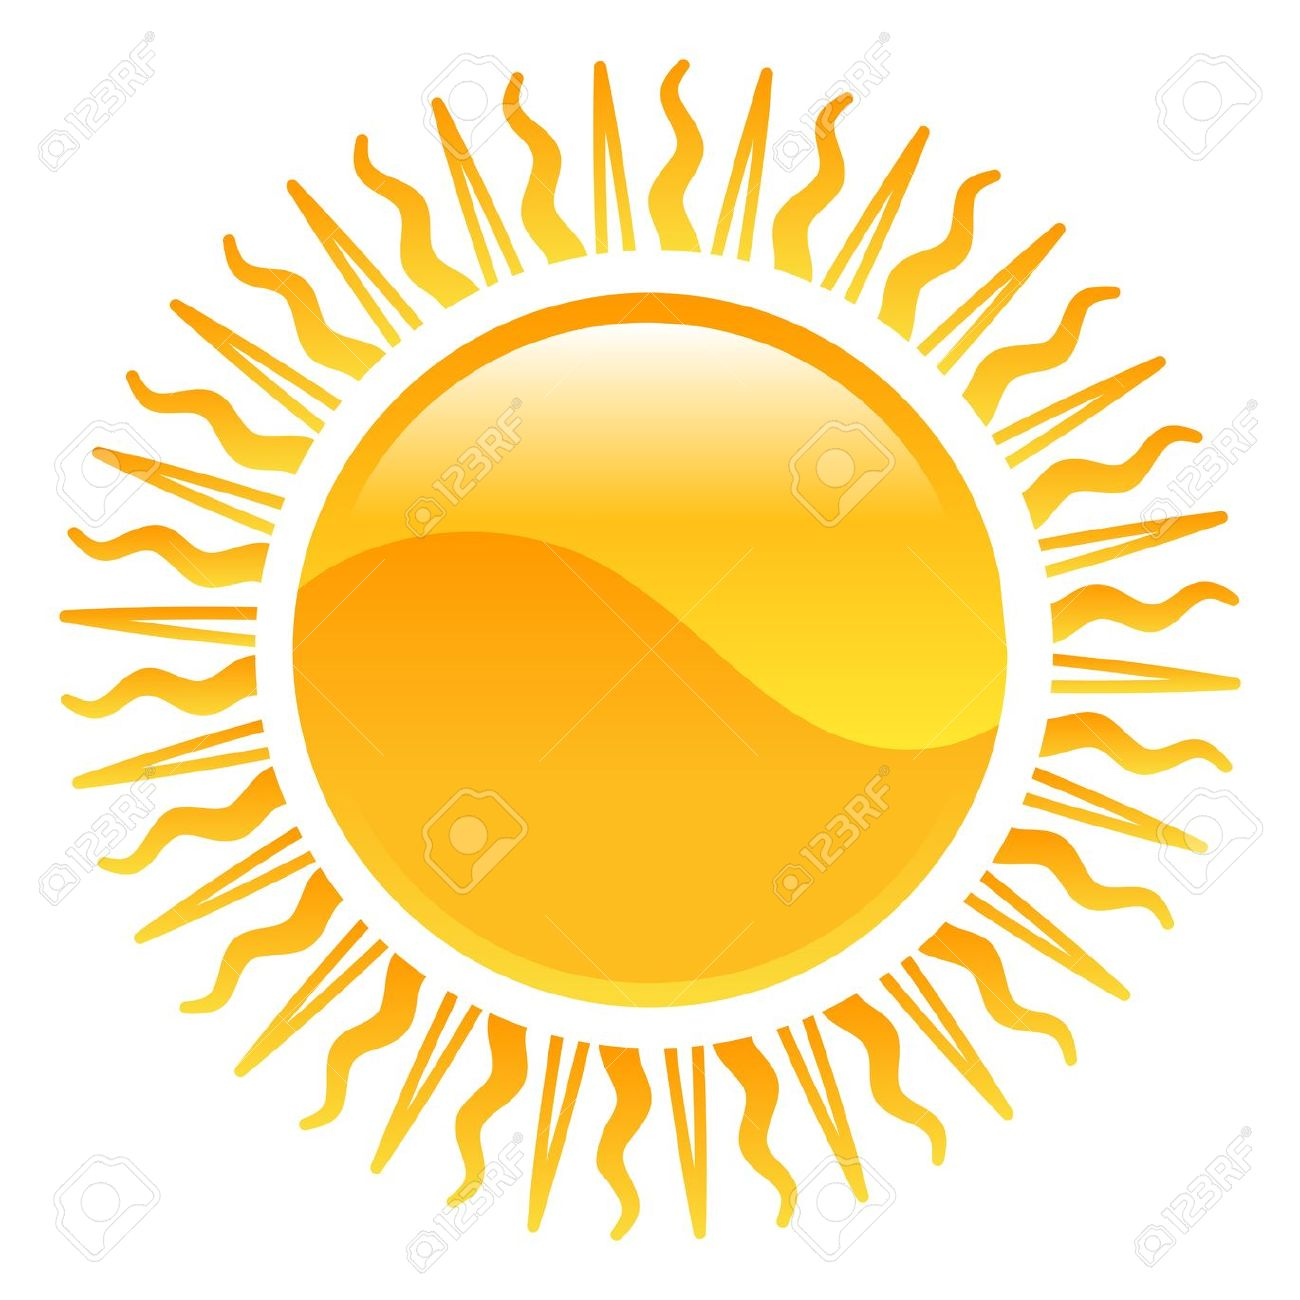 Weather Icon Clipart Sun Illustration Royalty Free Cliparts.